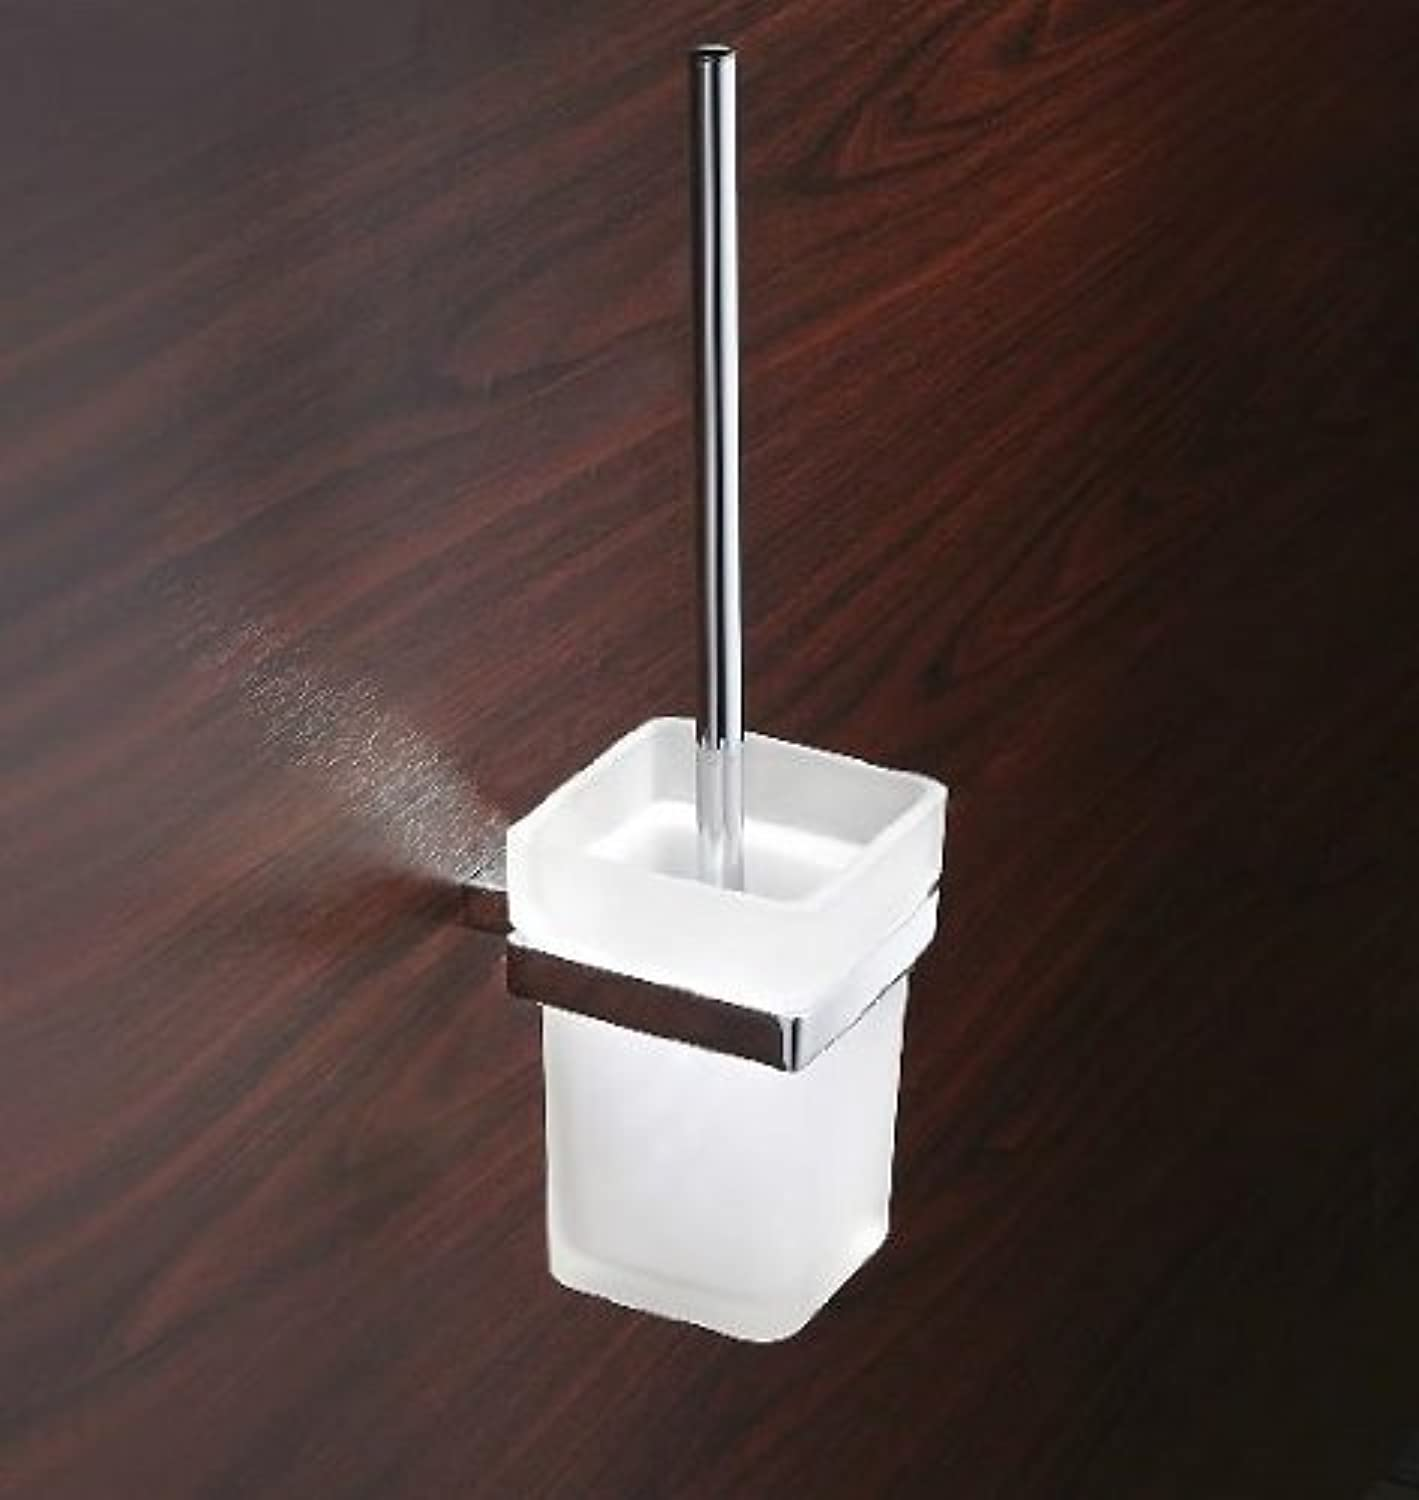 TACCY Bathroom Toilet Brush with Frosted Glass Cup and Brass Holder in Chrome Silver Finish  HD11